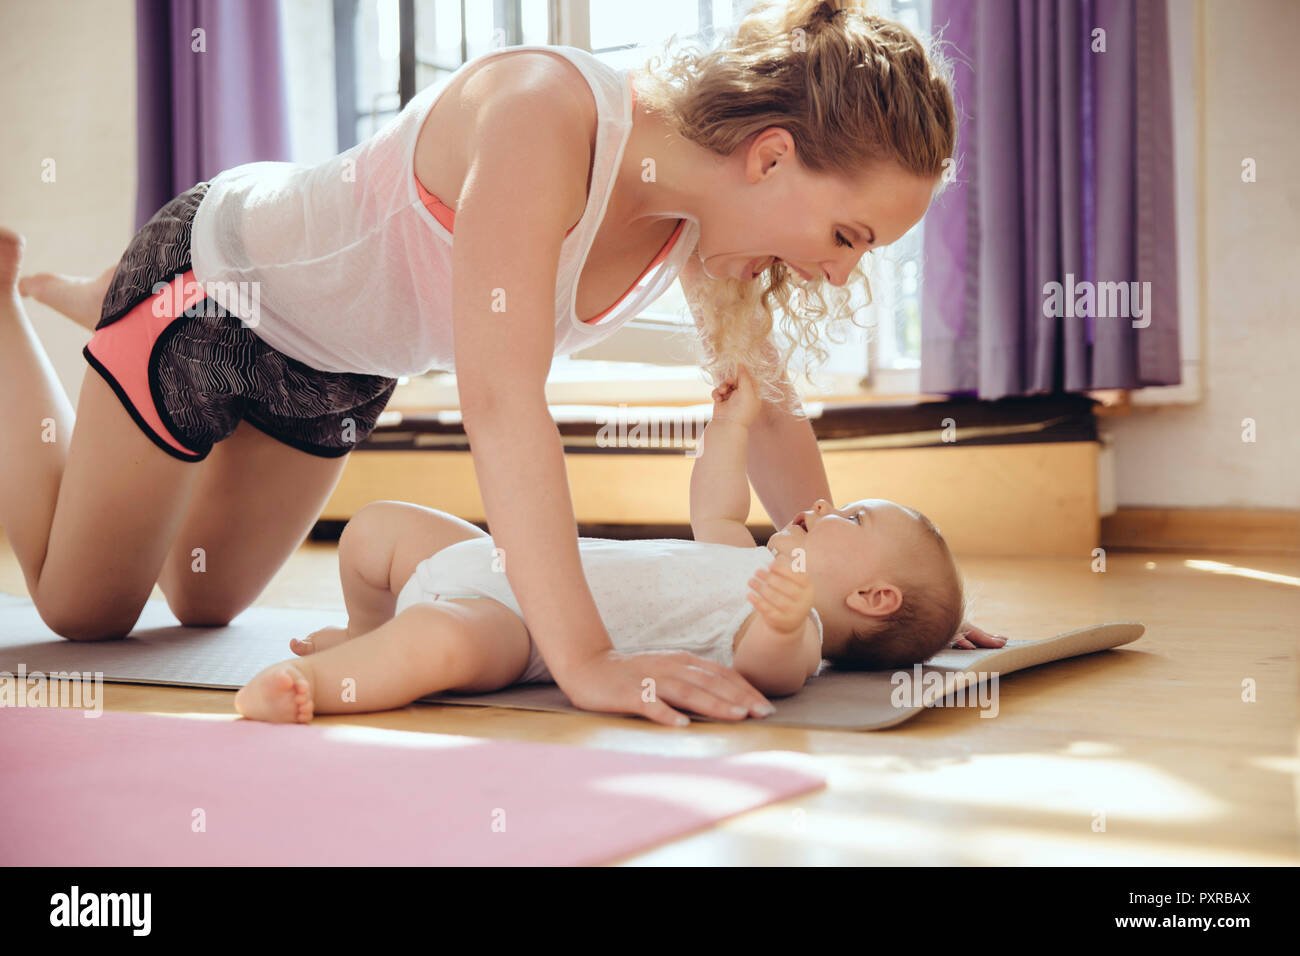 Mother playing with her baby on yoga mat while working out - Stock Image